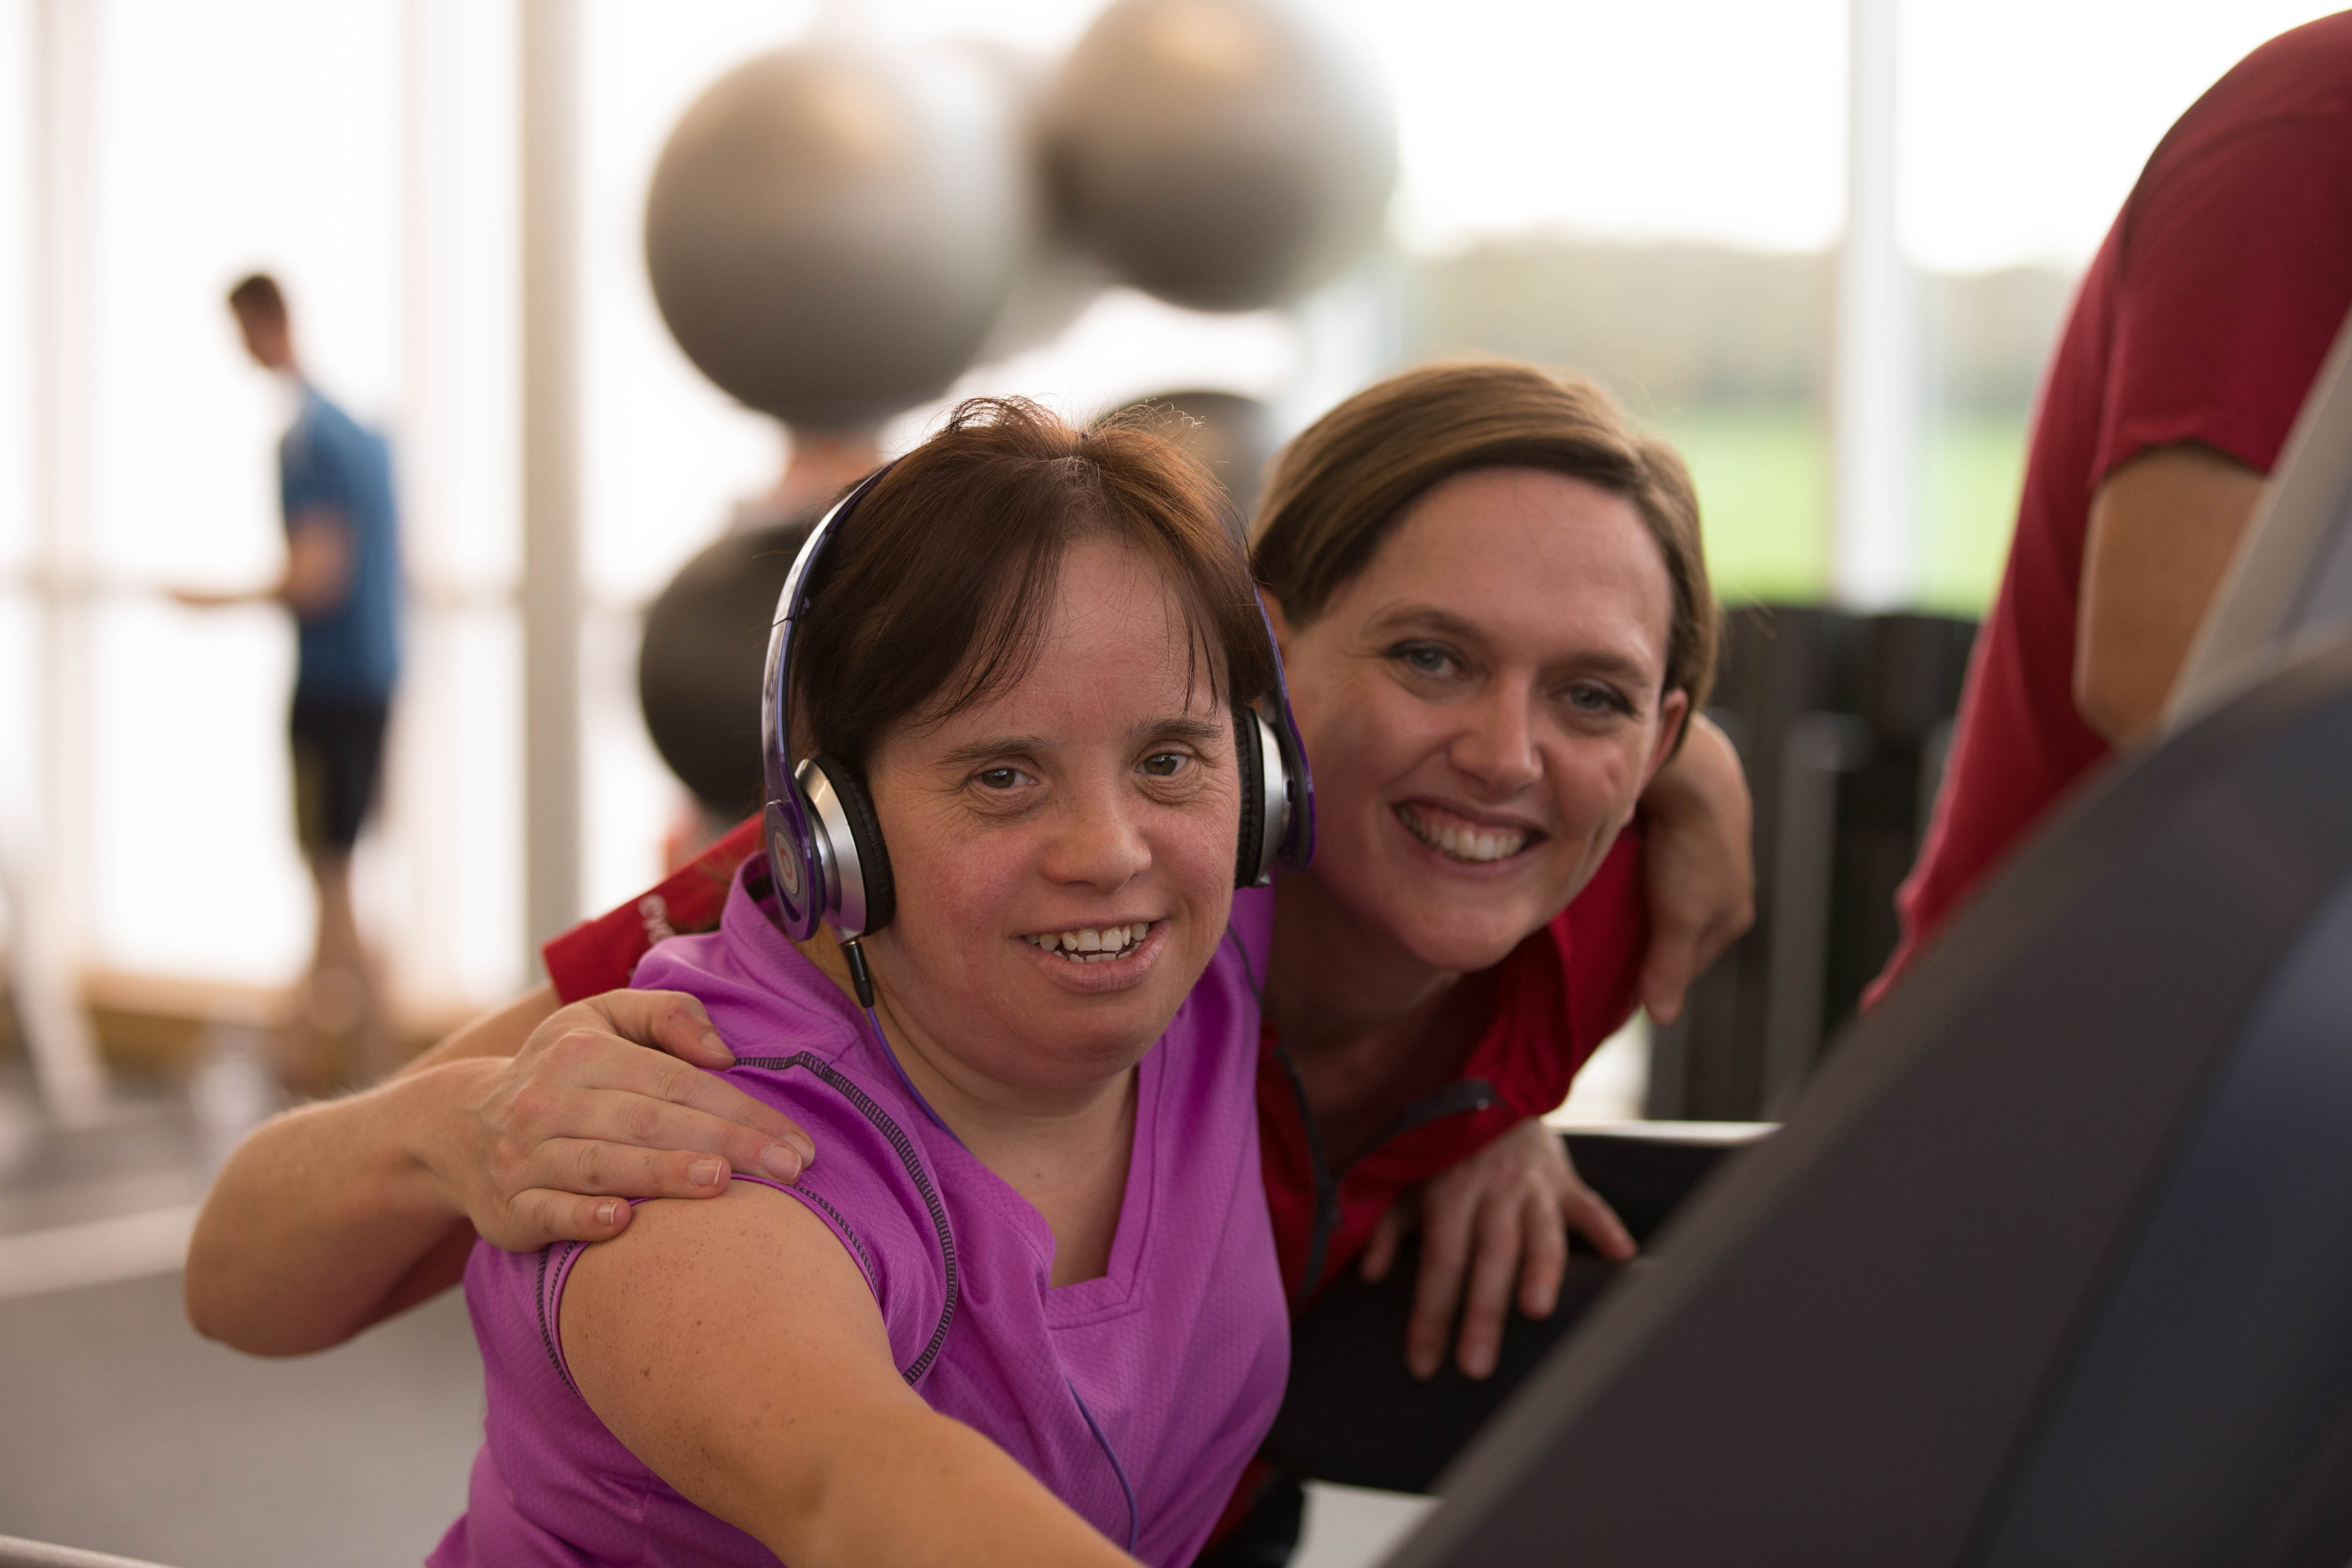 Sport for Confidence launches 'Stay Connected' to support self-isolating vulnerable adults